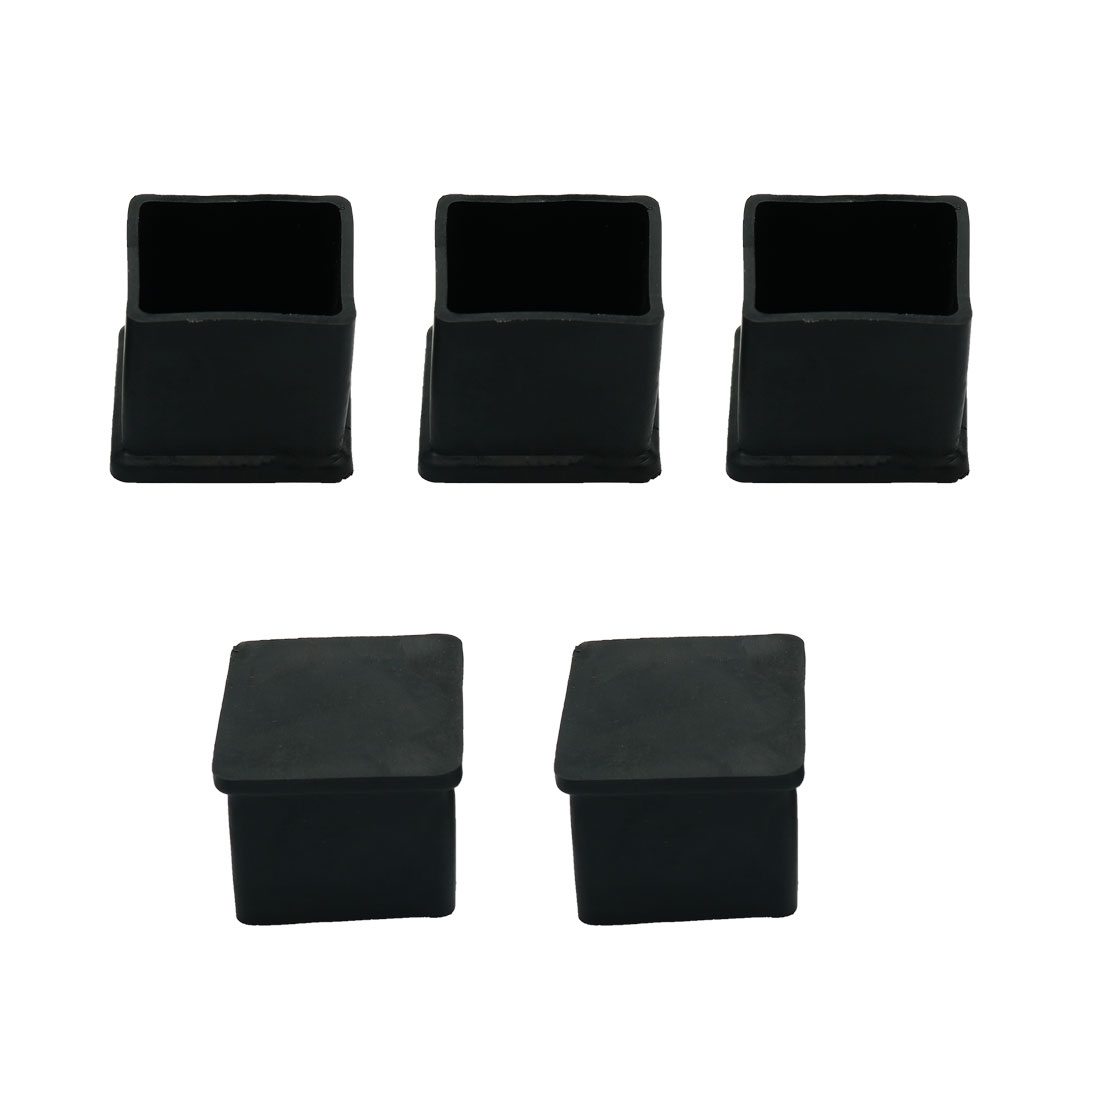 5 Pcs Square Rubber Furniture Table Foot Leg Cover Pad Floor Protector 25mm x 25mm